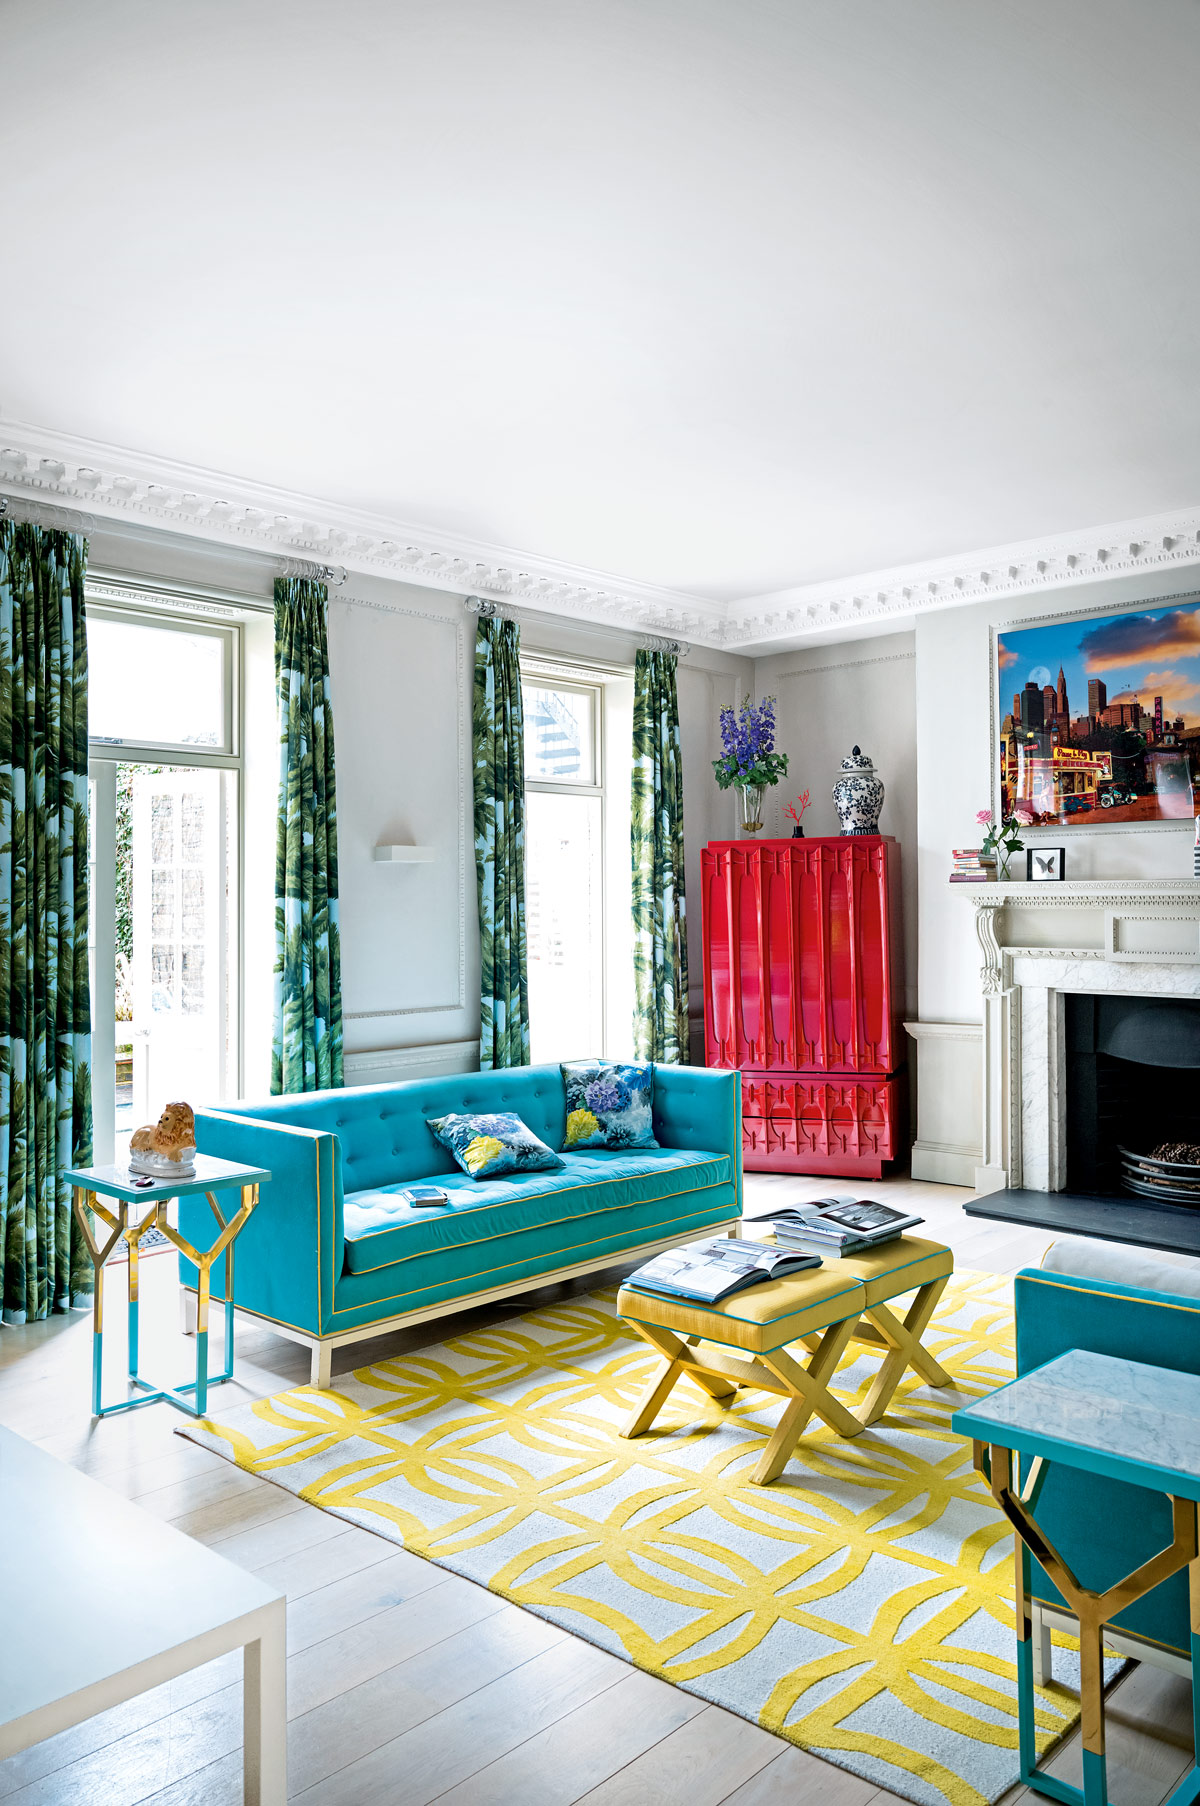 Get the look Curtains made from Pierre Frey\u0027s playful Mauritius linen fabric £230.40m. This is Jonathan Adler\u0027s L&ert sofa £3595. & 8 Modern Living Room Ideas | Livingetc